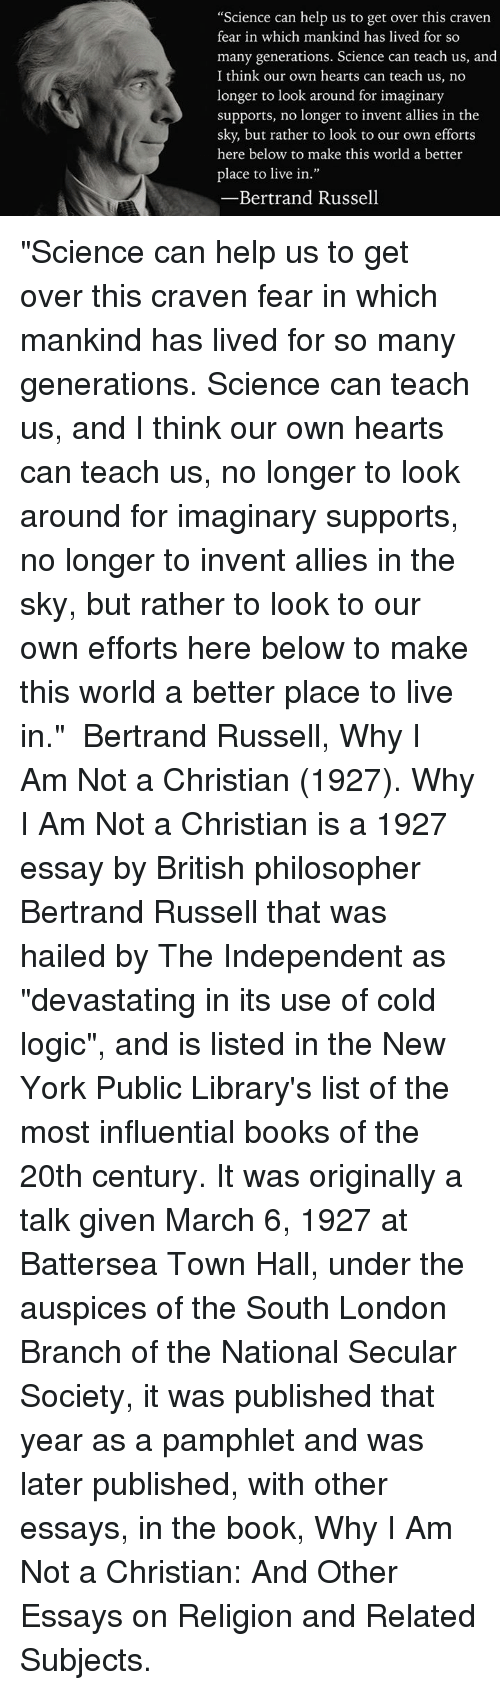 why i am not a christian and other essays Why i am not a christian and other essays on religion and related subjects by bertrand russell light shelf wear and minimal interior marks millions of satisfied customers and climbing.